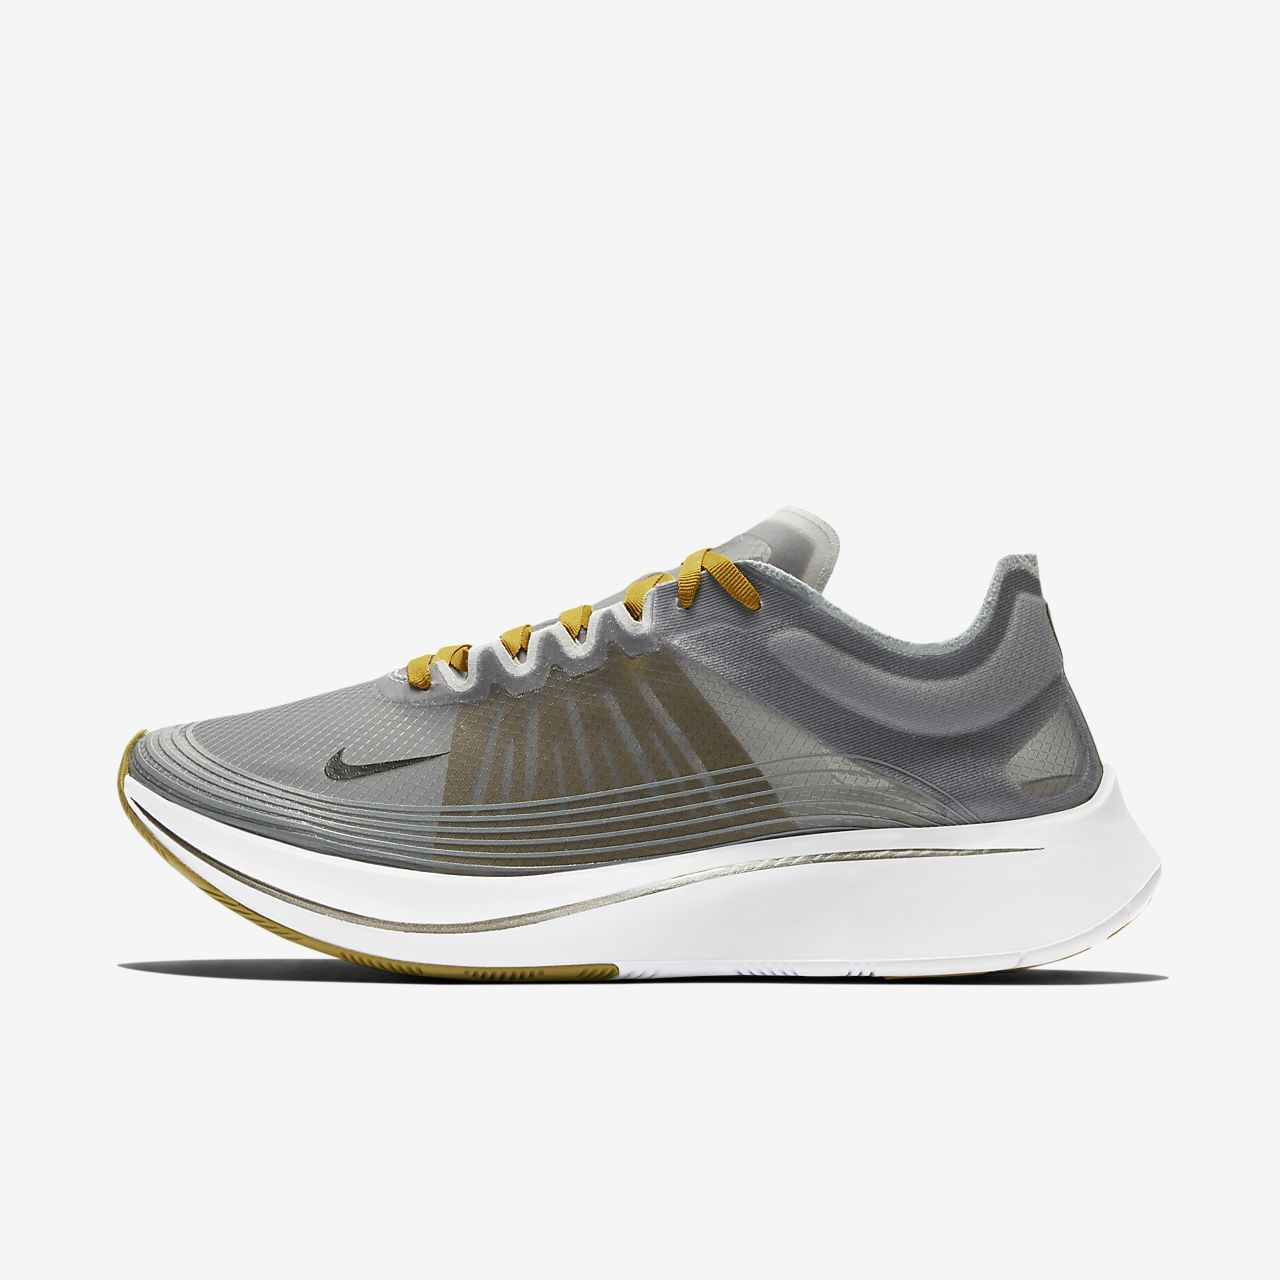 57ae8893c4fd Nike Zoom Fly SP Running Shoe. Nike.com